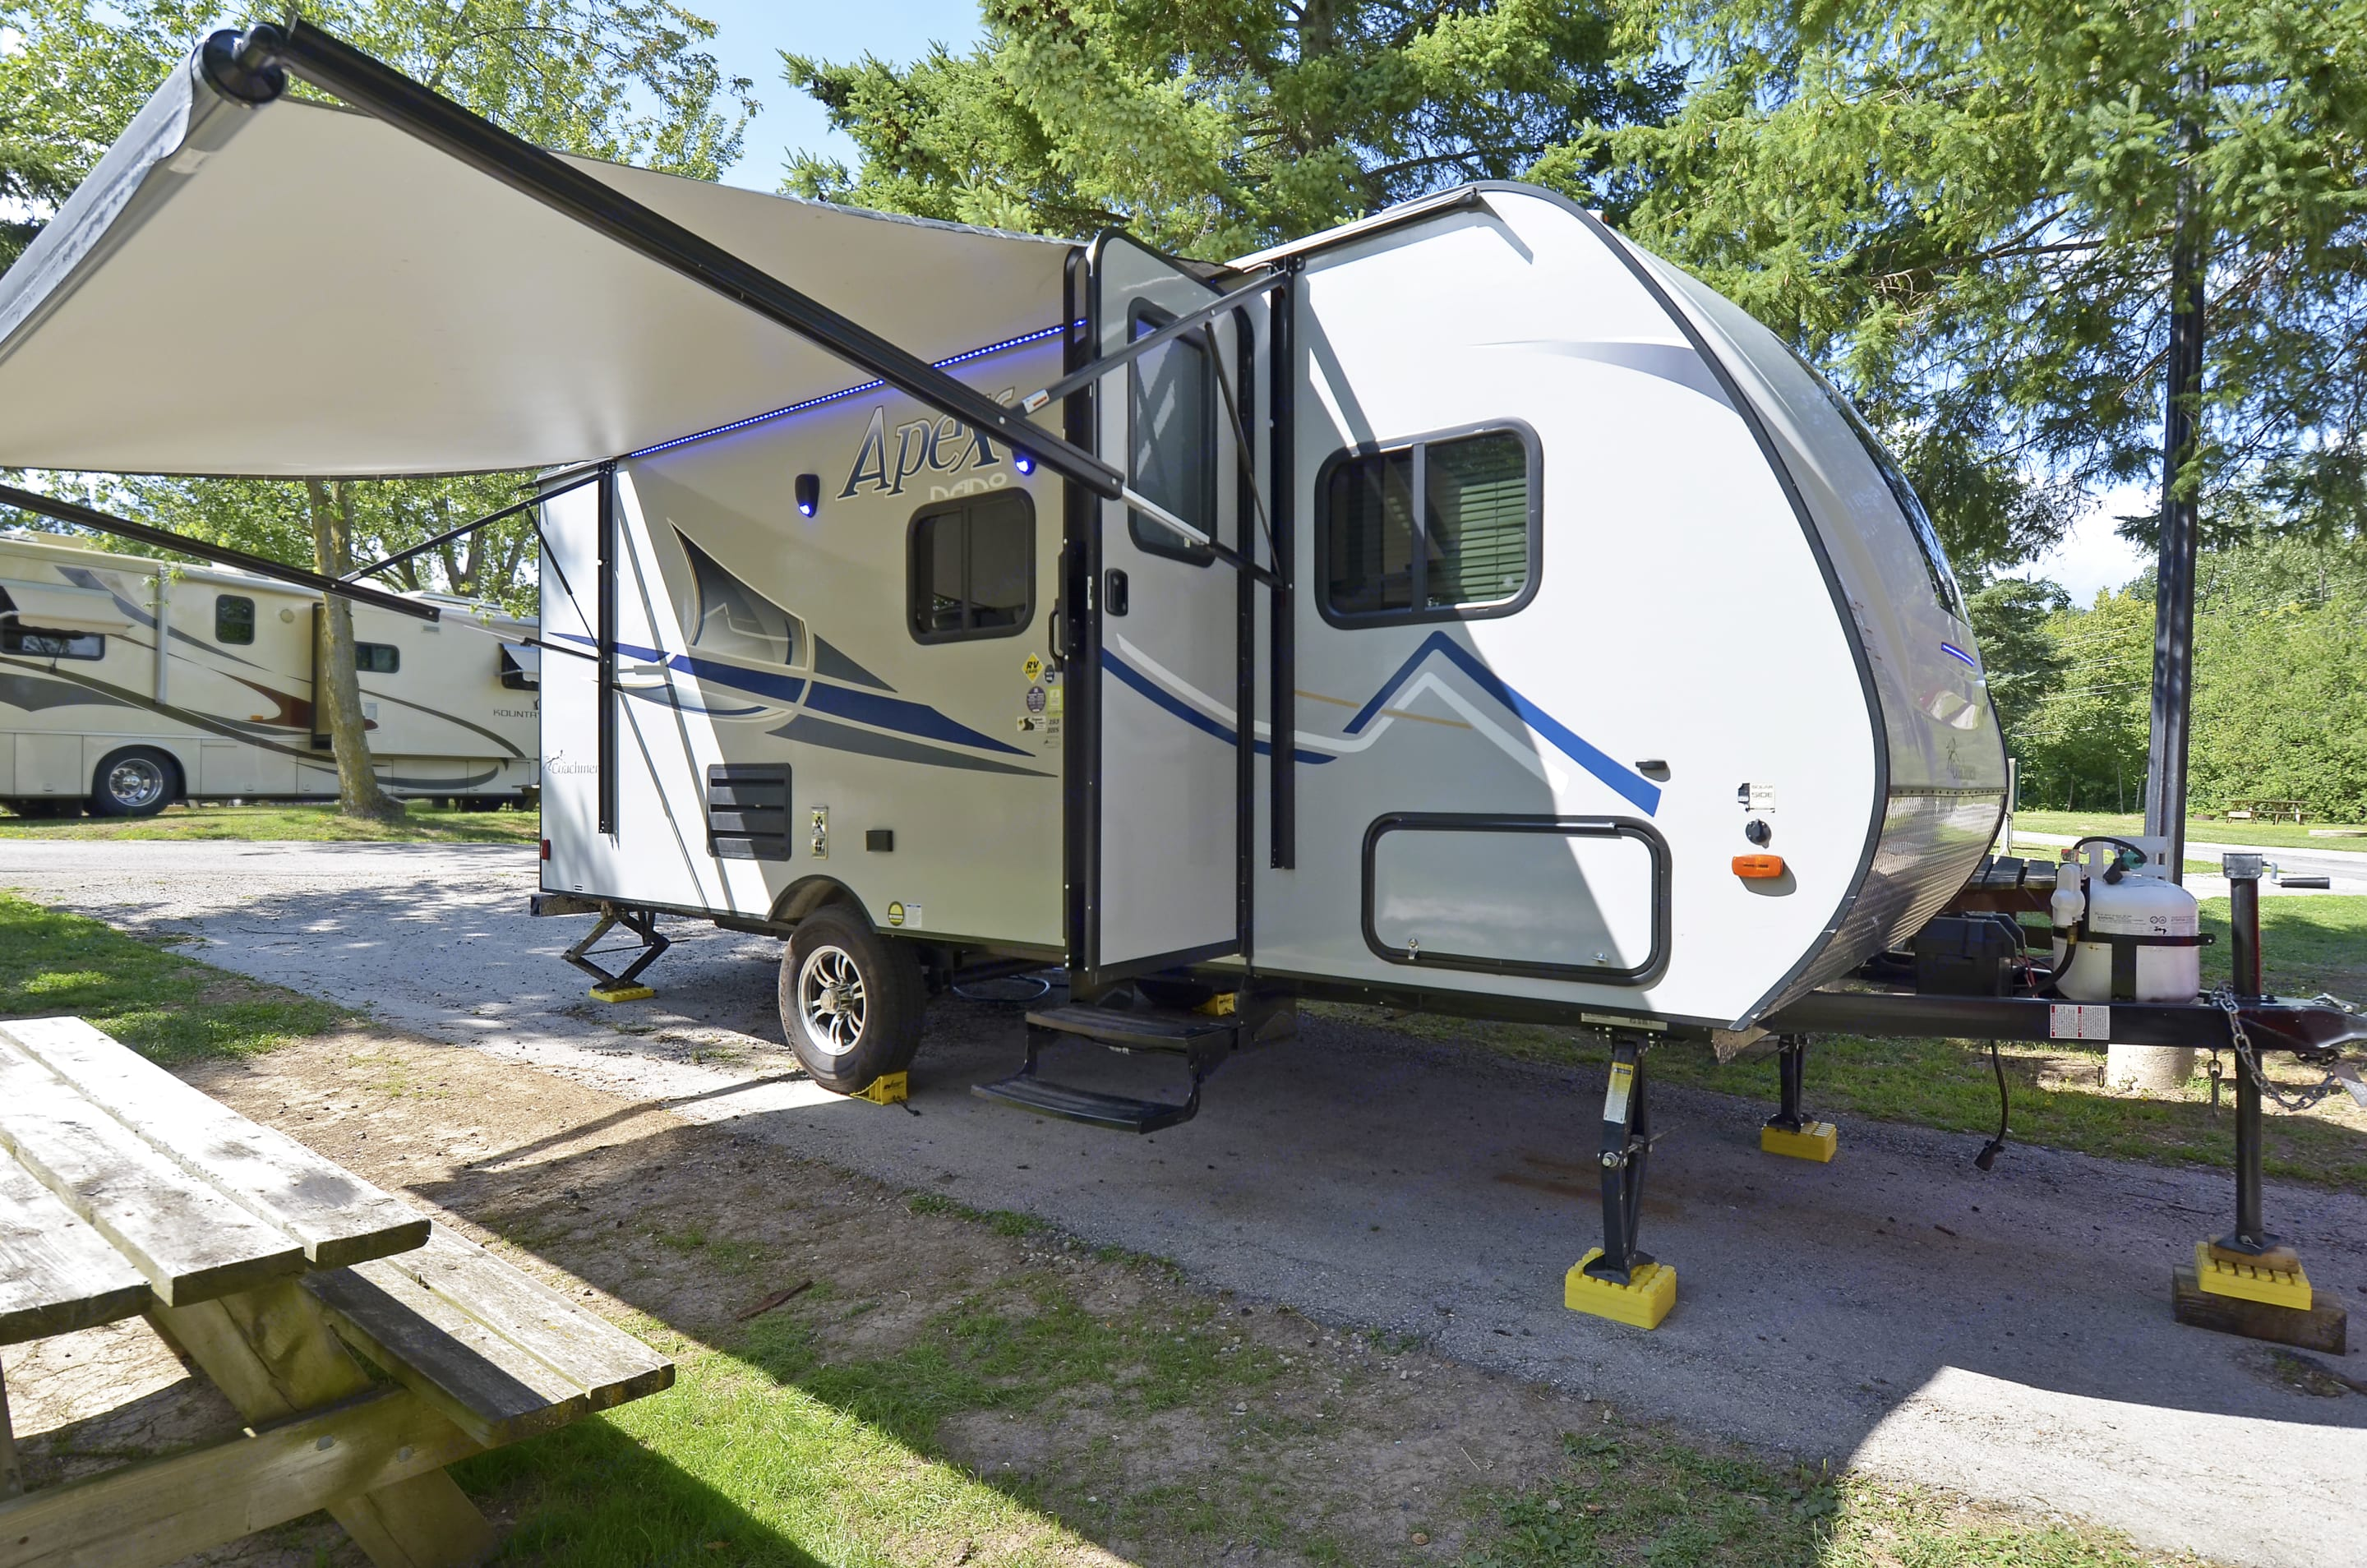 Awning and entrance. Coachmen Apex 2018